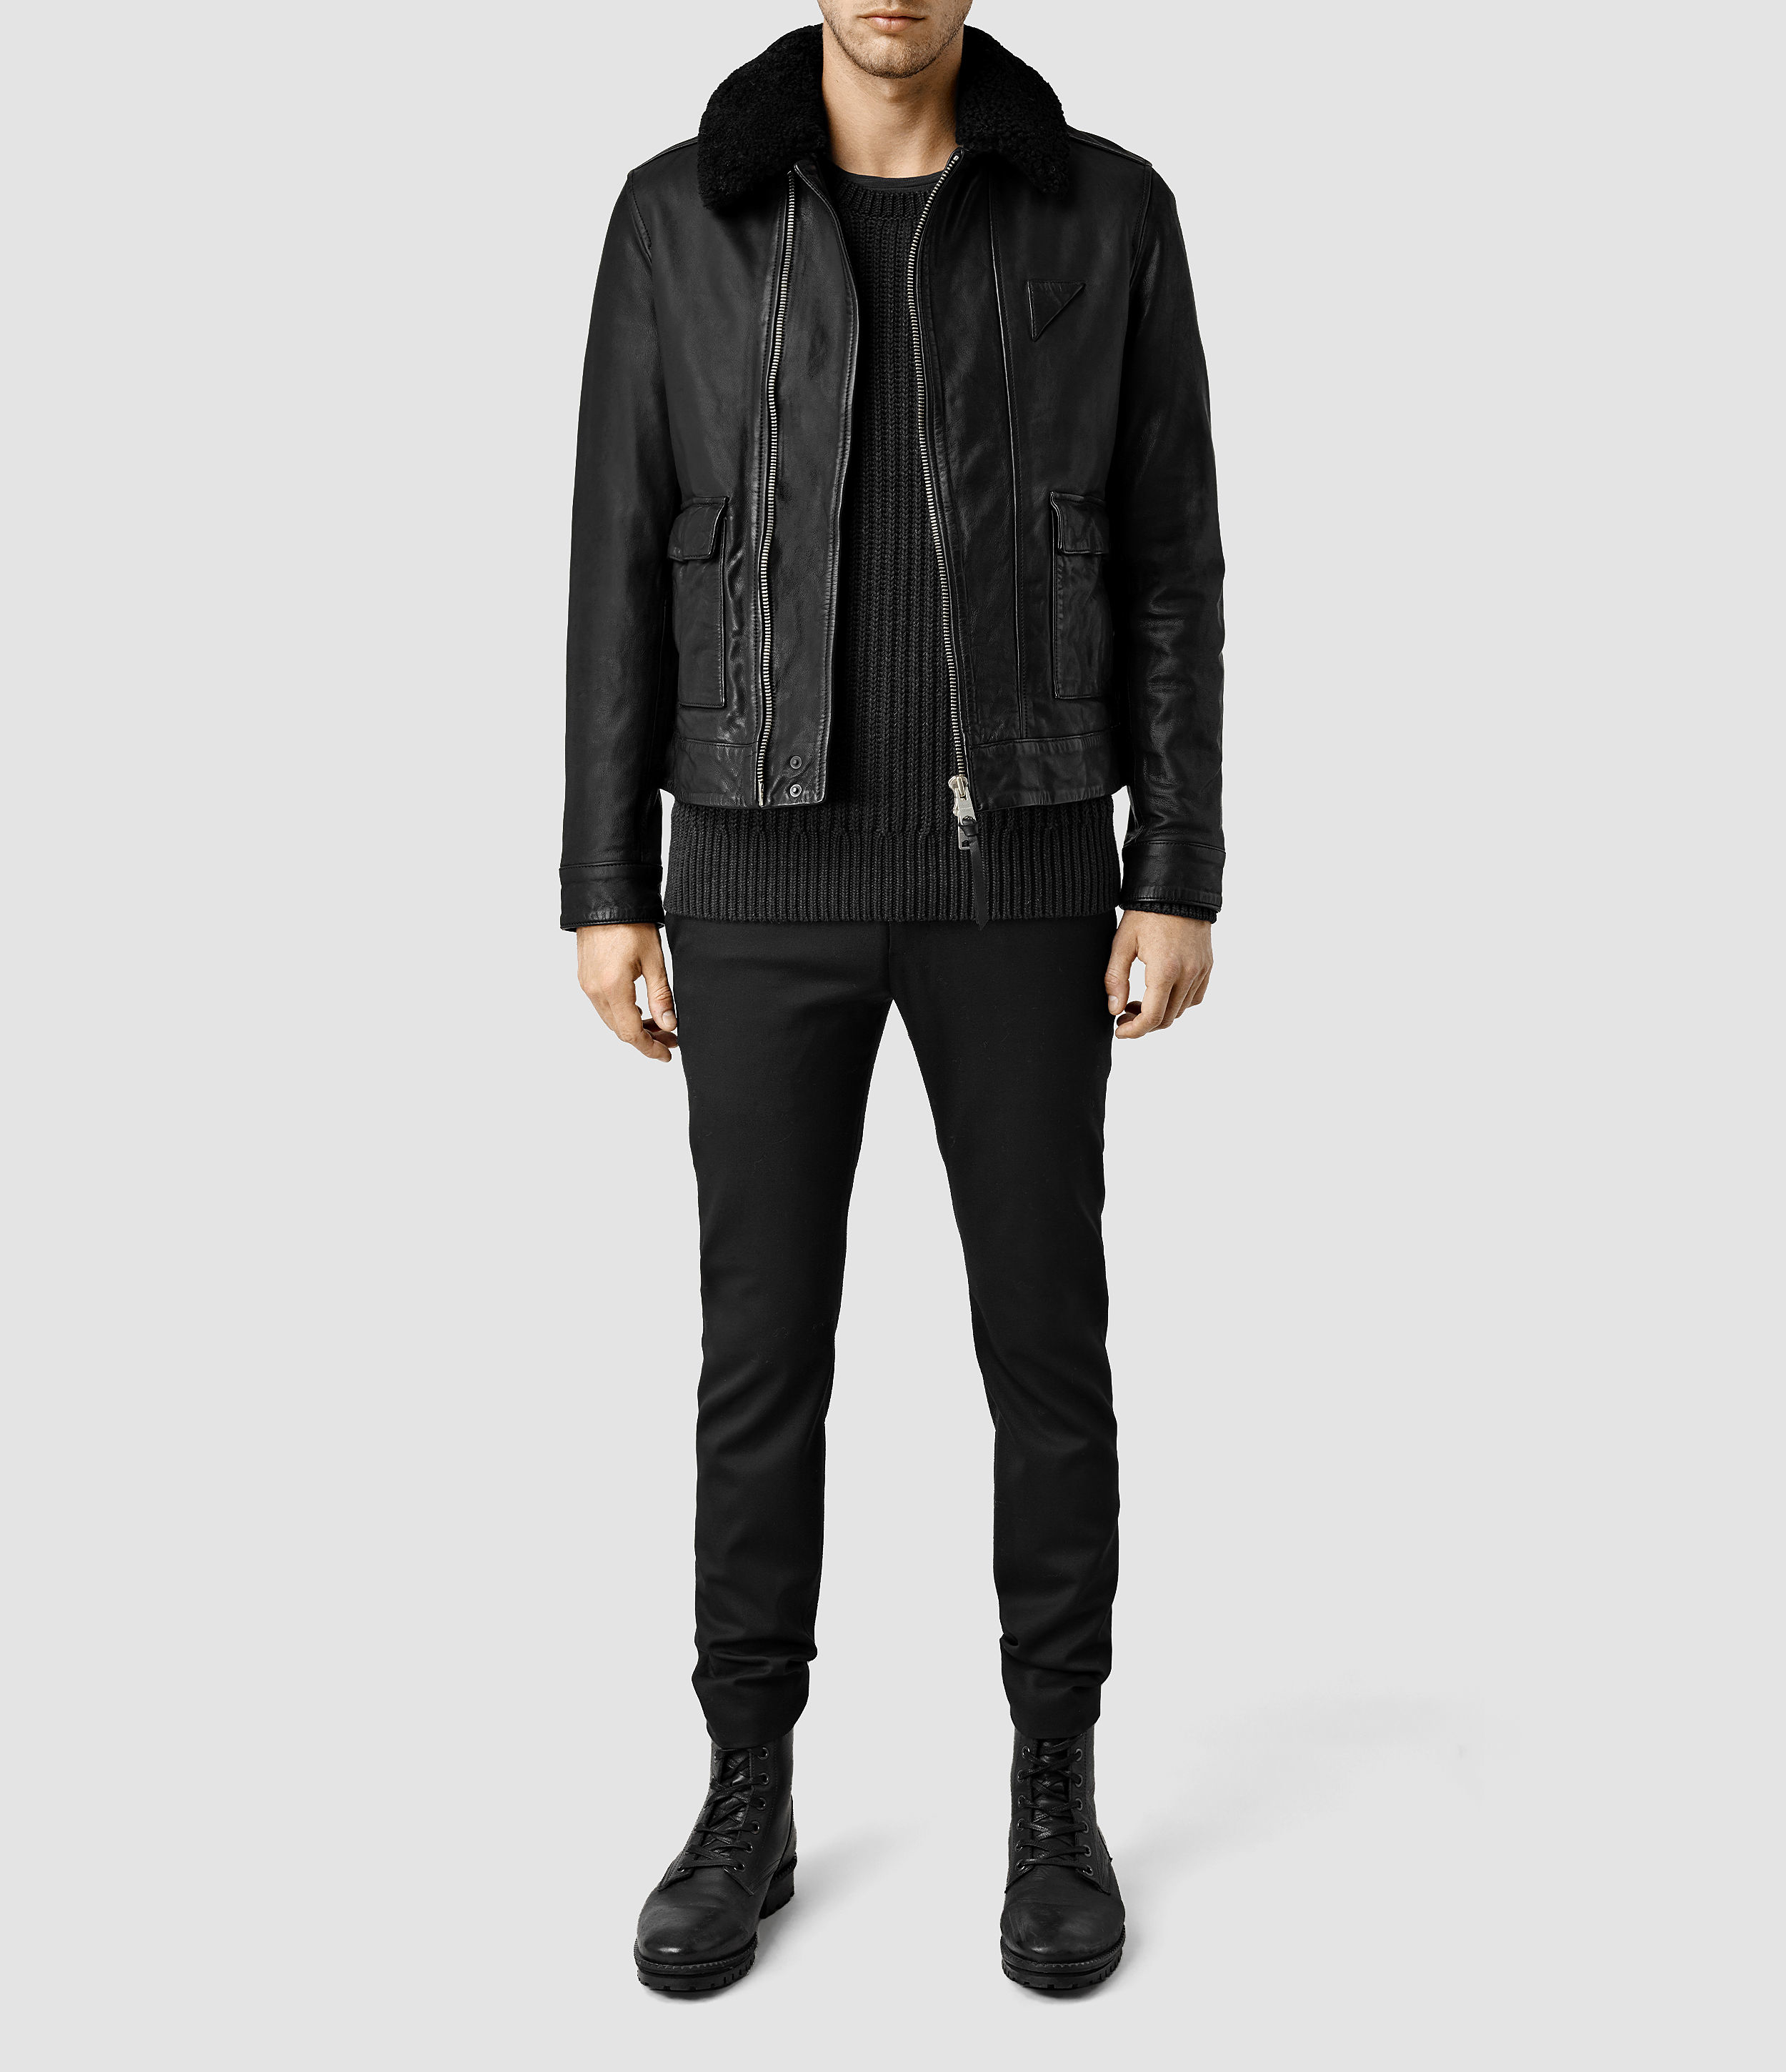 Allsaints Gate Leather Biker Jacket In Black For Men Lyst